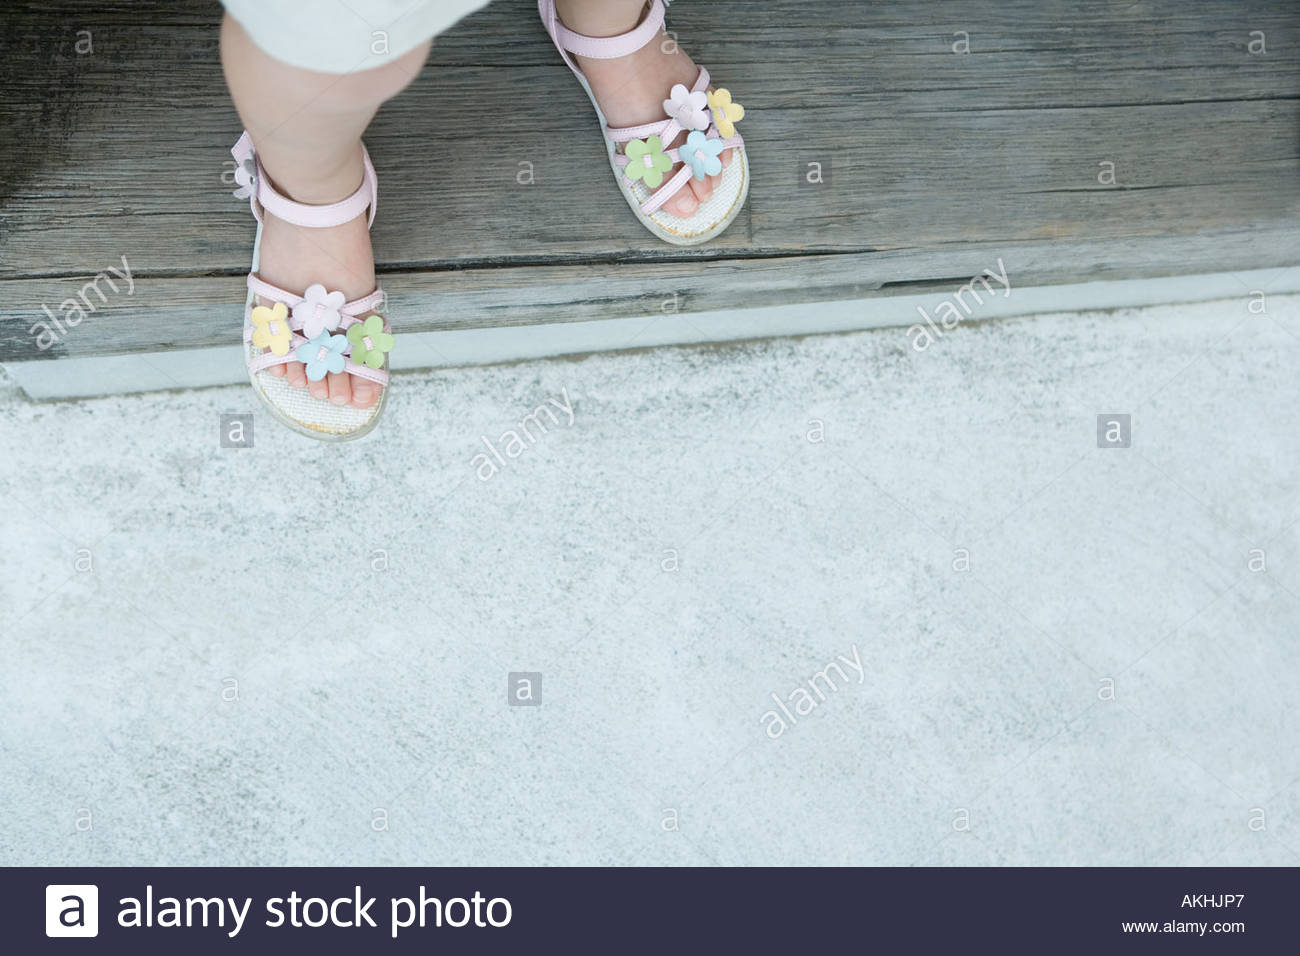 Girl wearing floral sandals - Stock Image